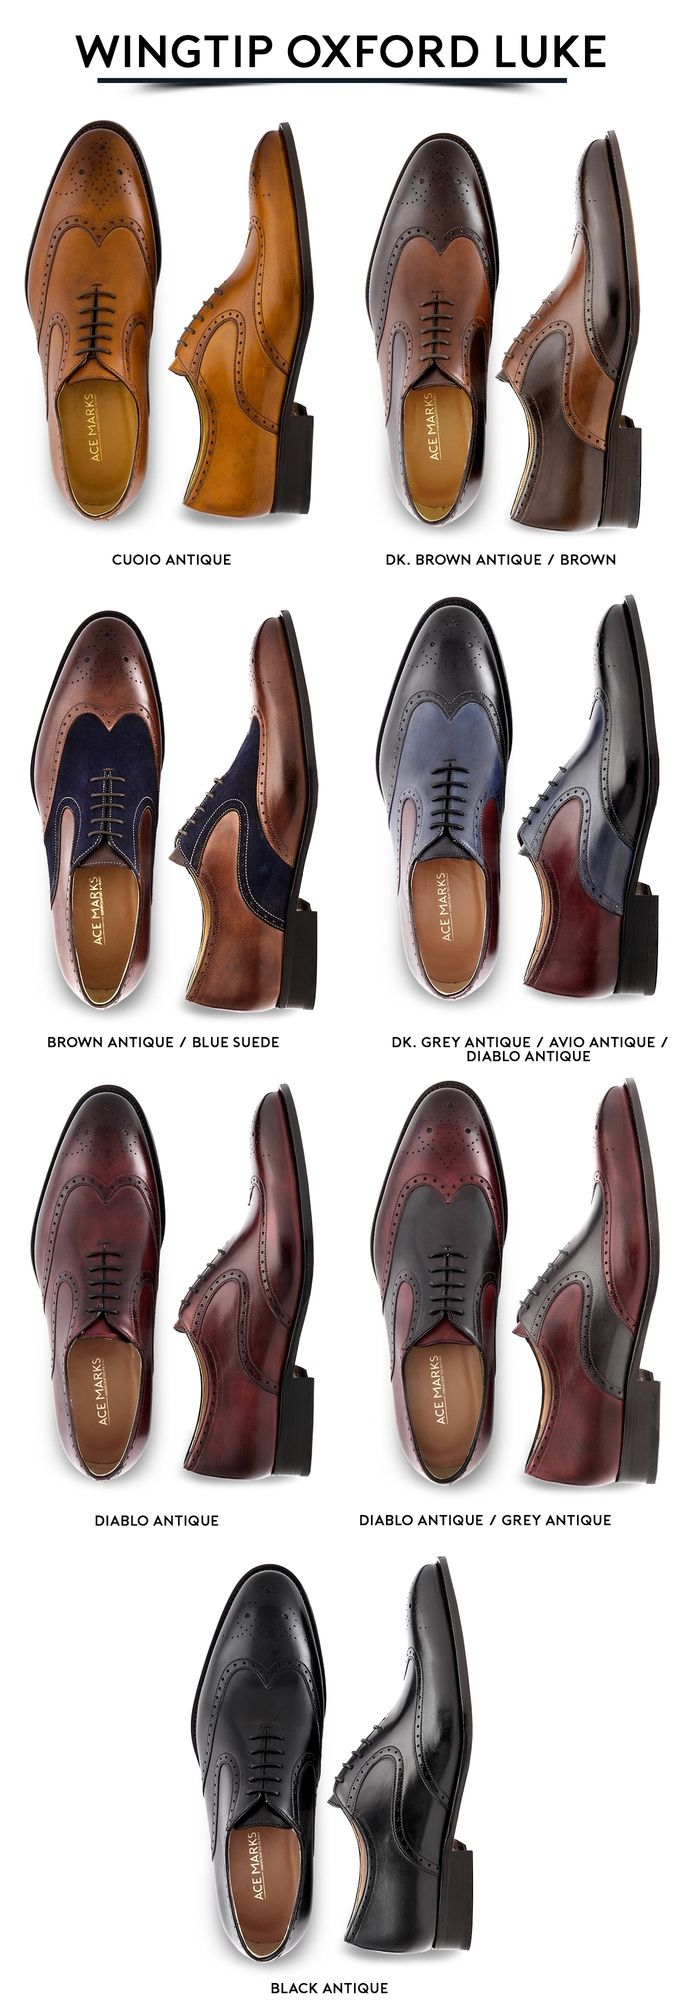 How To Get $600 Italian Leather Shoes For LESS Than $200